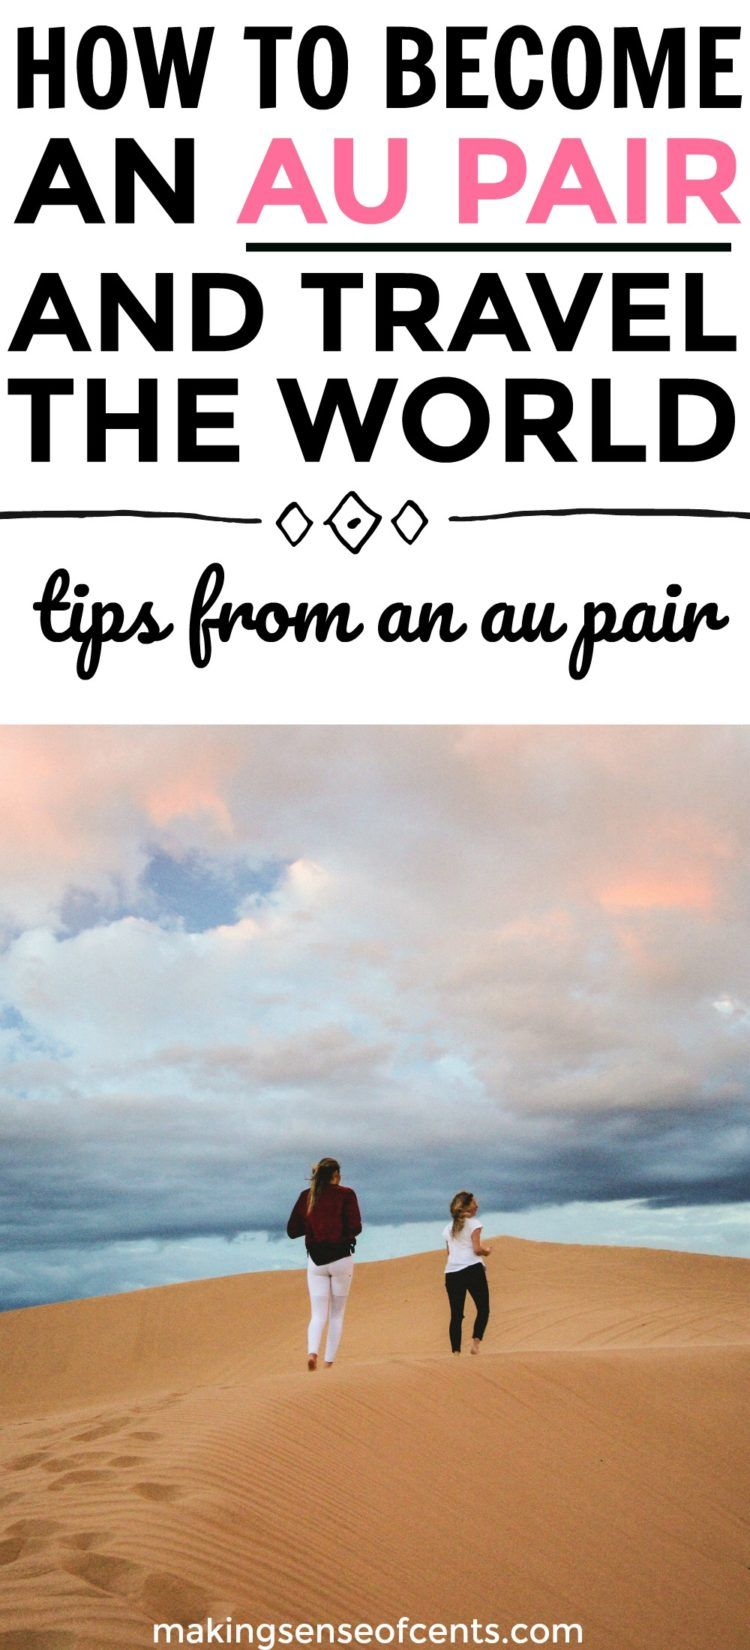 How To Become An Au Pair - Becoming An Au Pair And ...